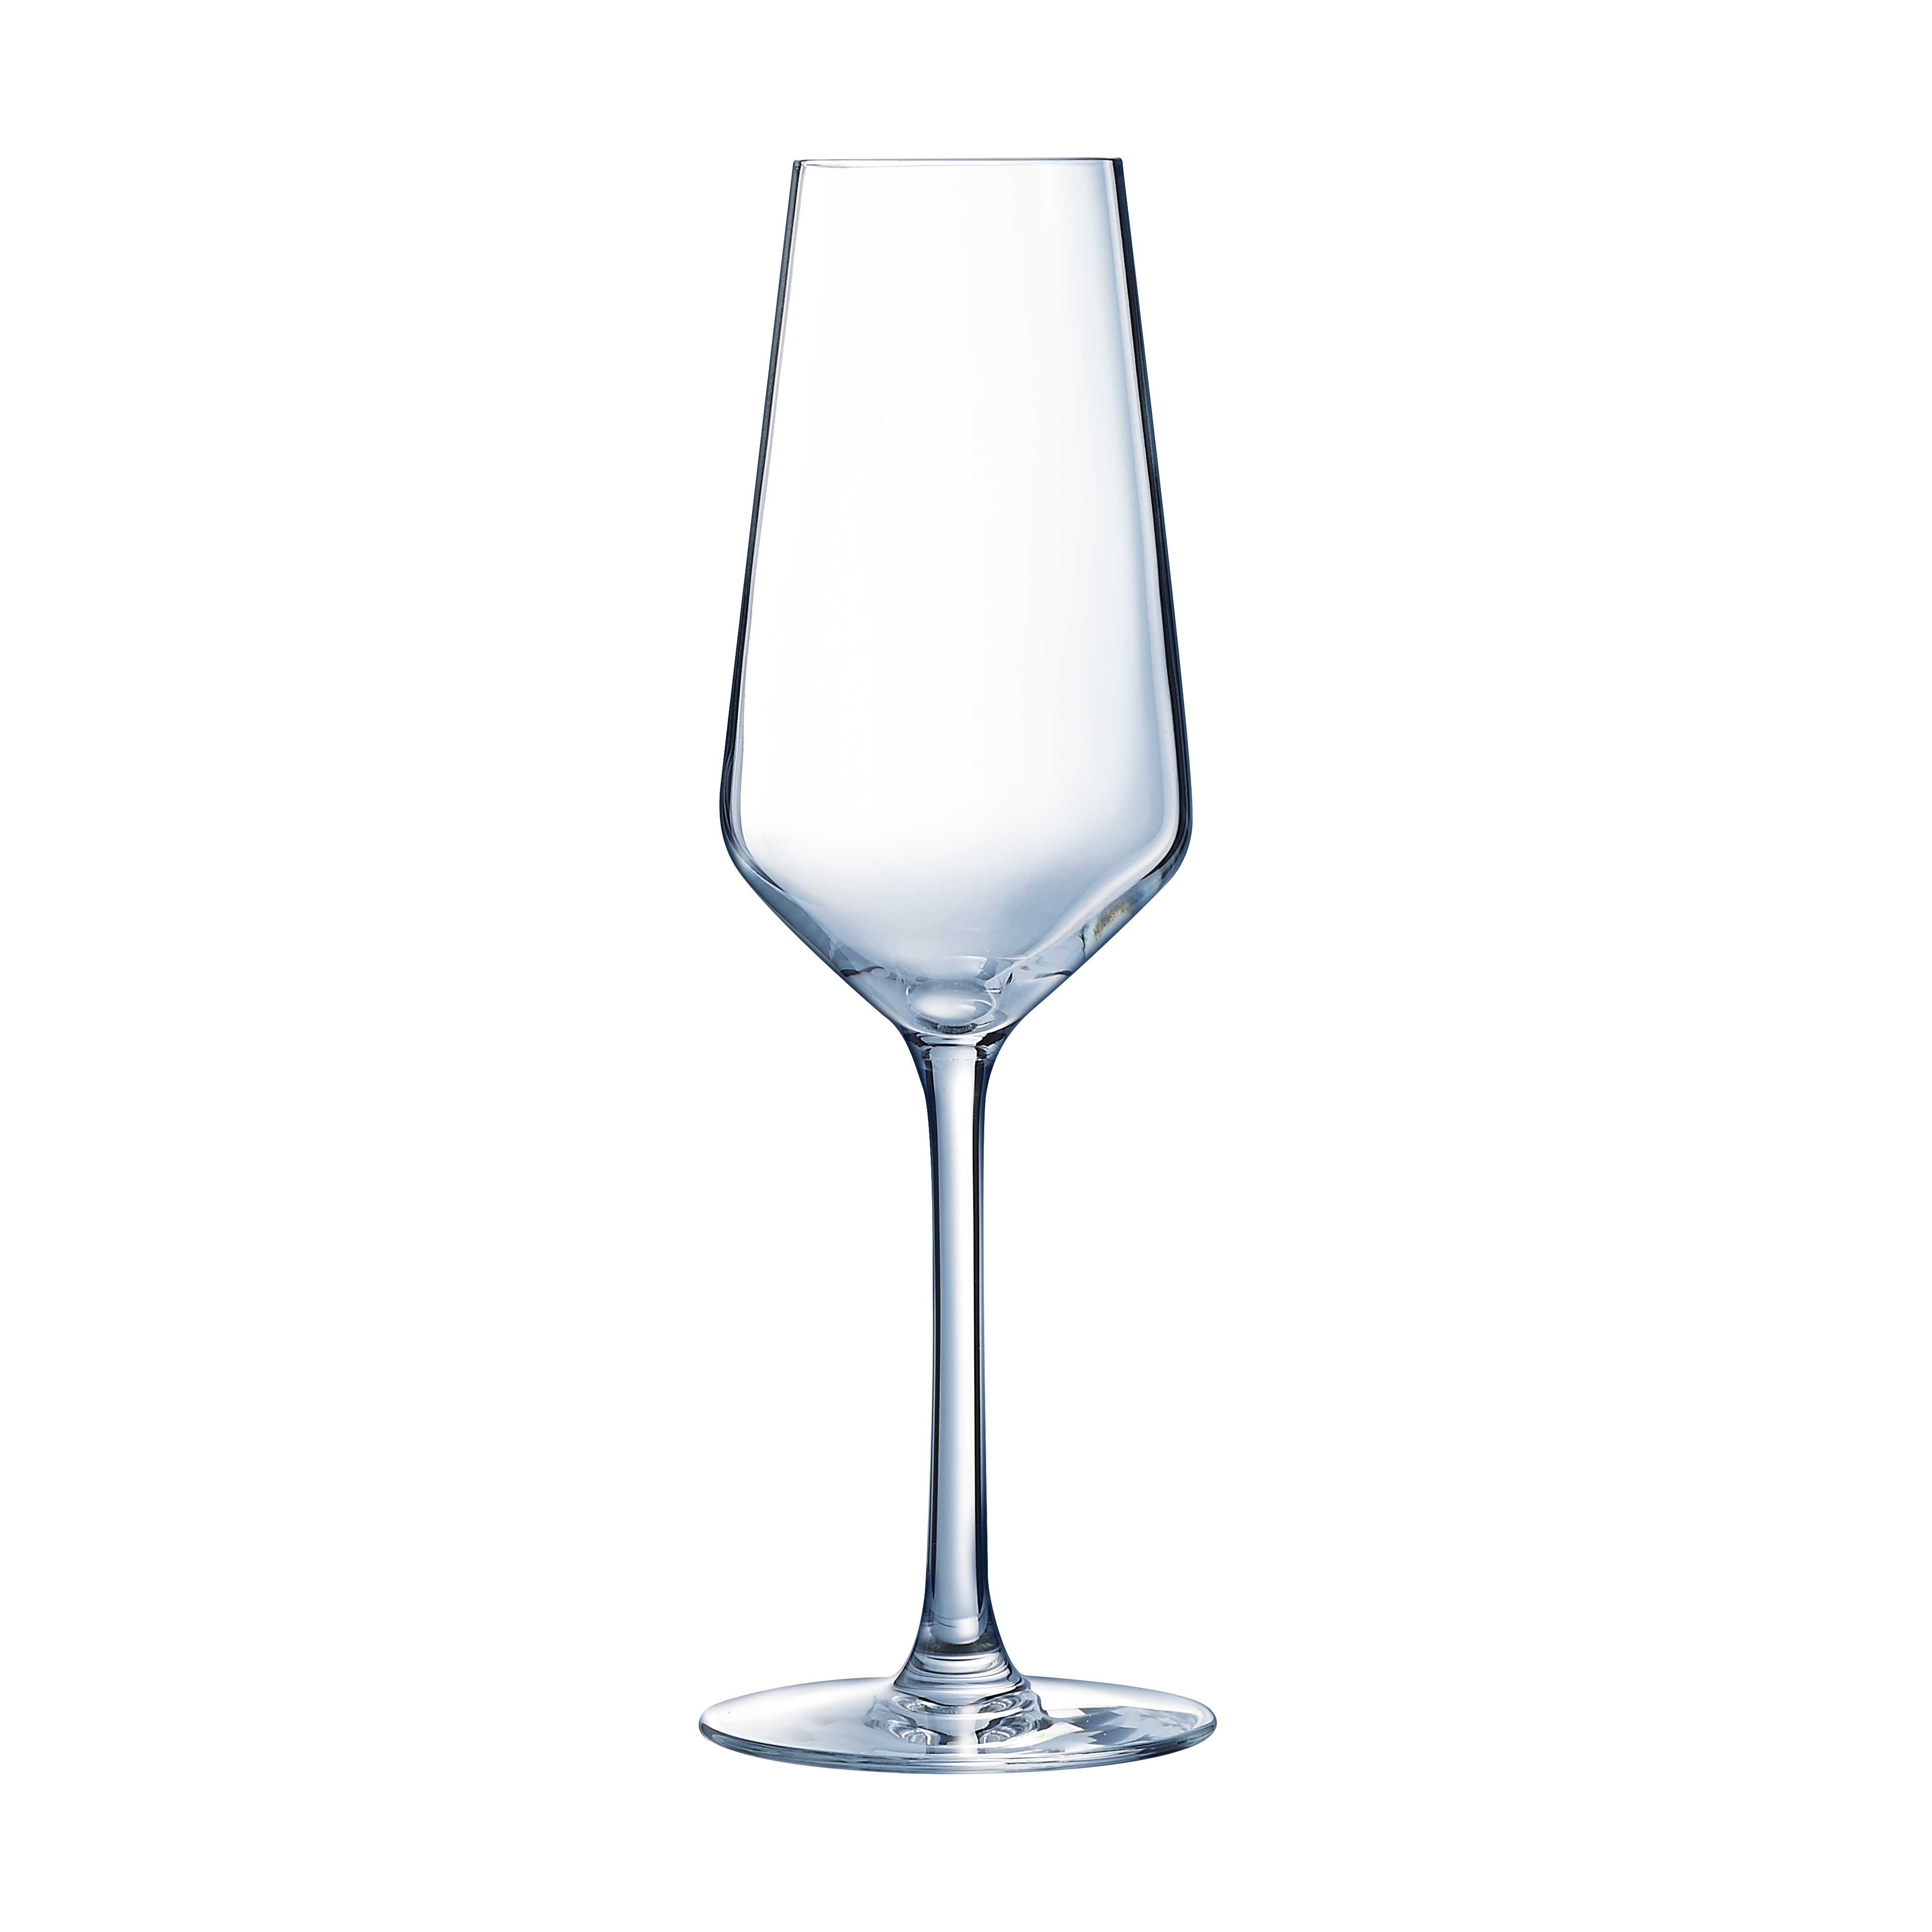 Cardinal N5082 glass, champagne / sparkling wine